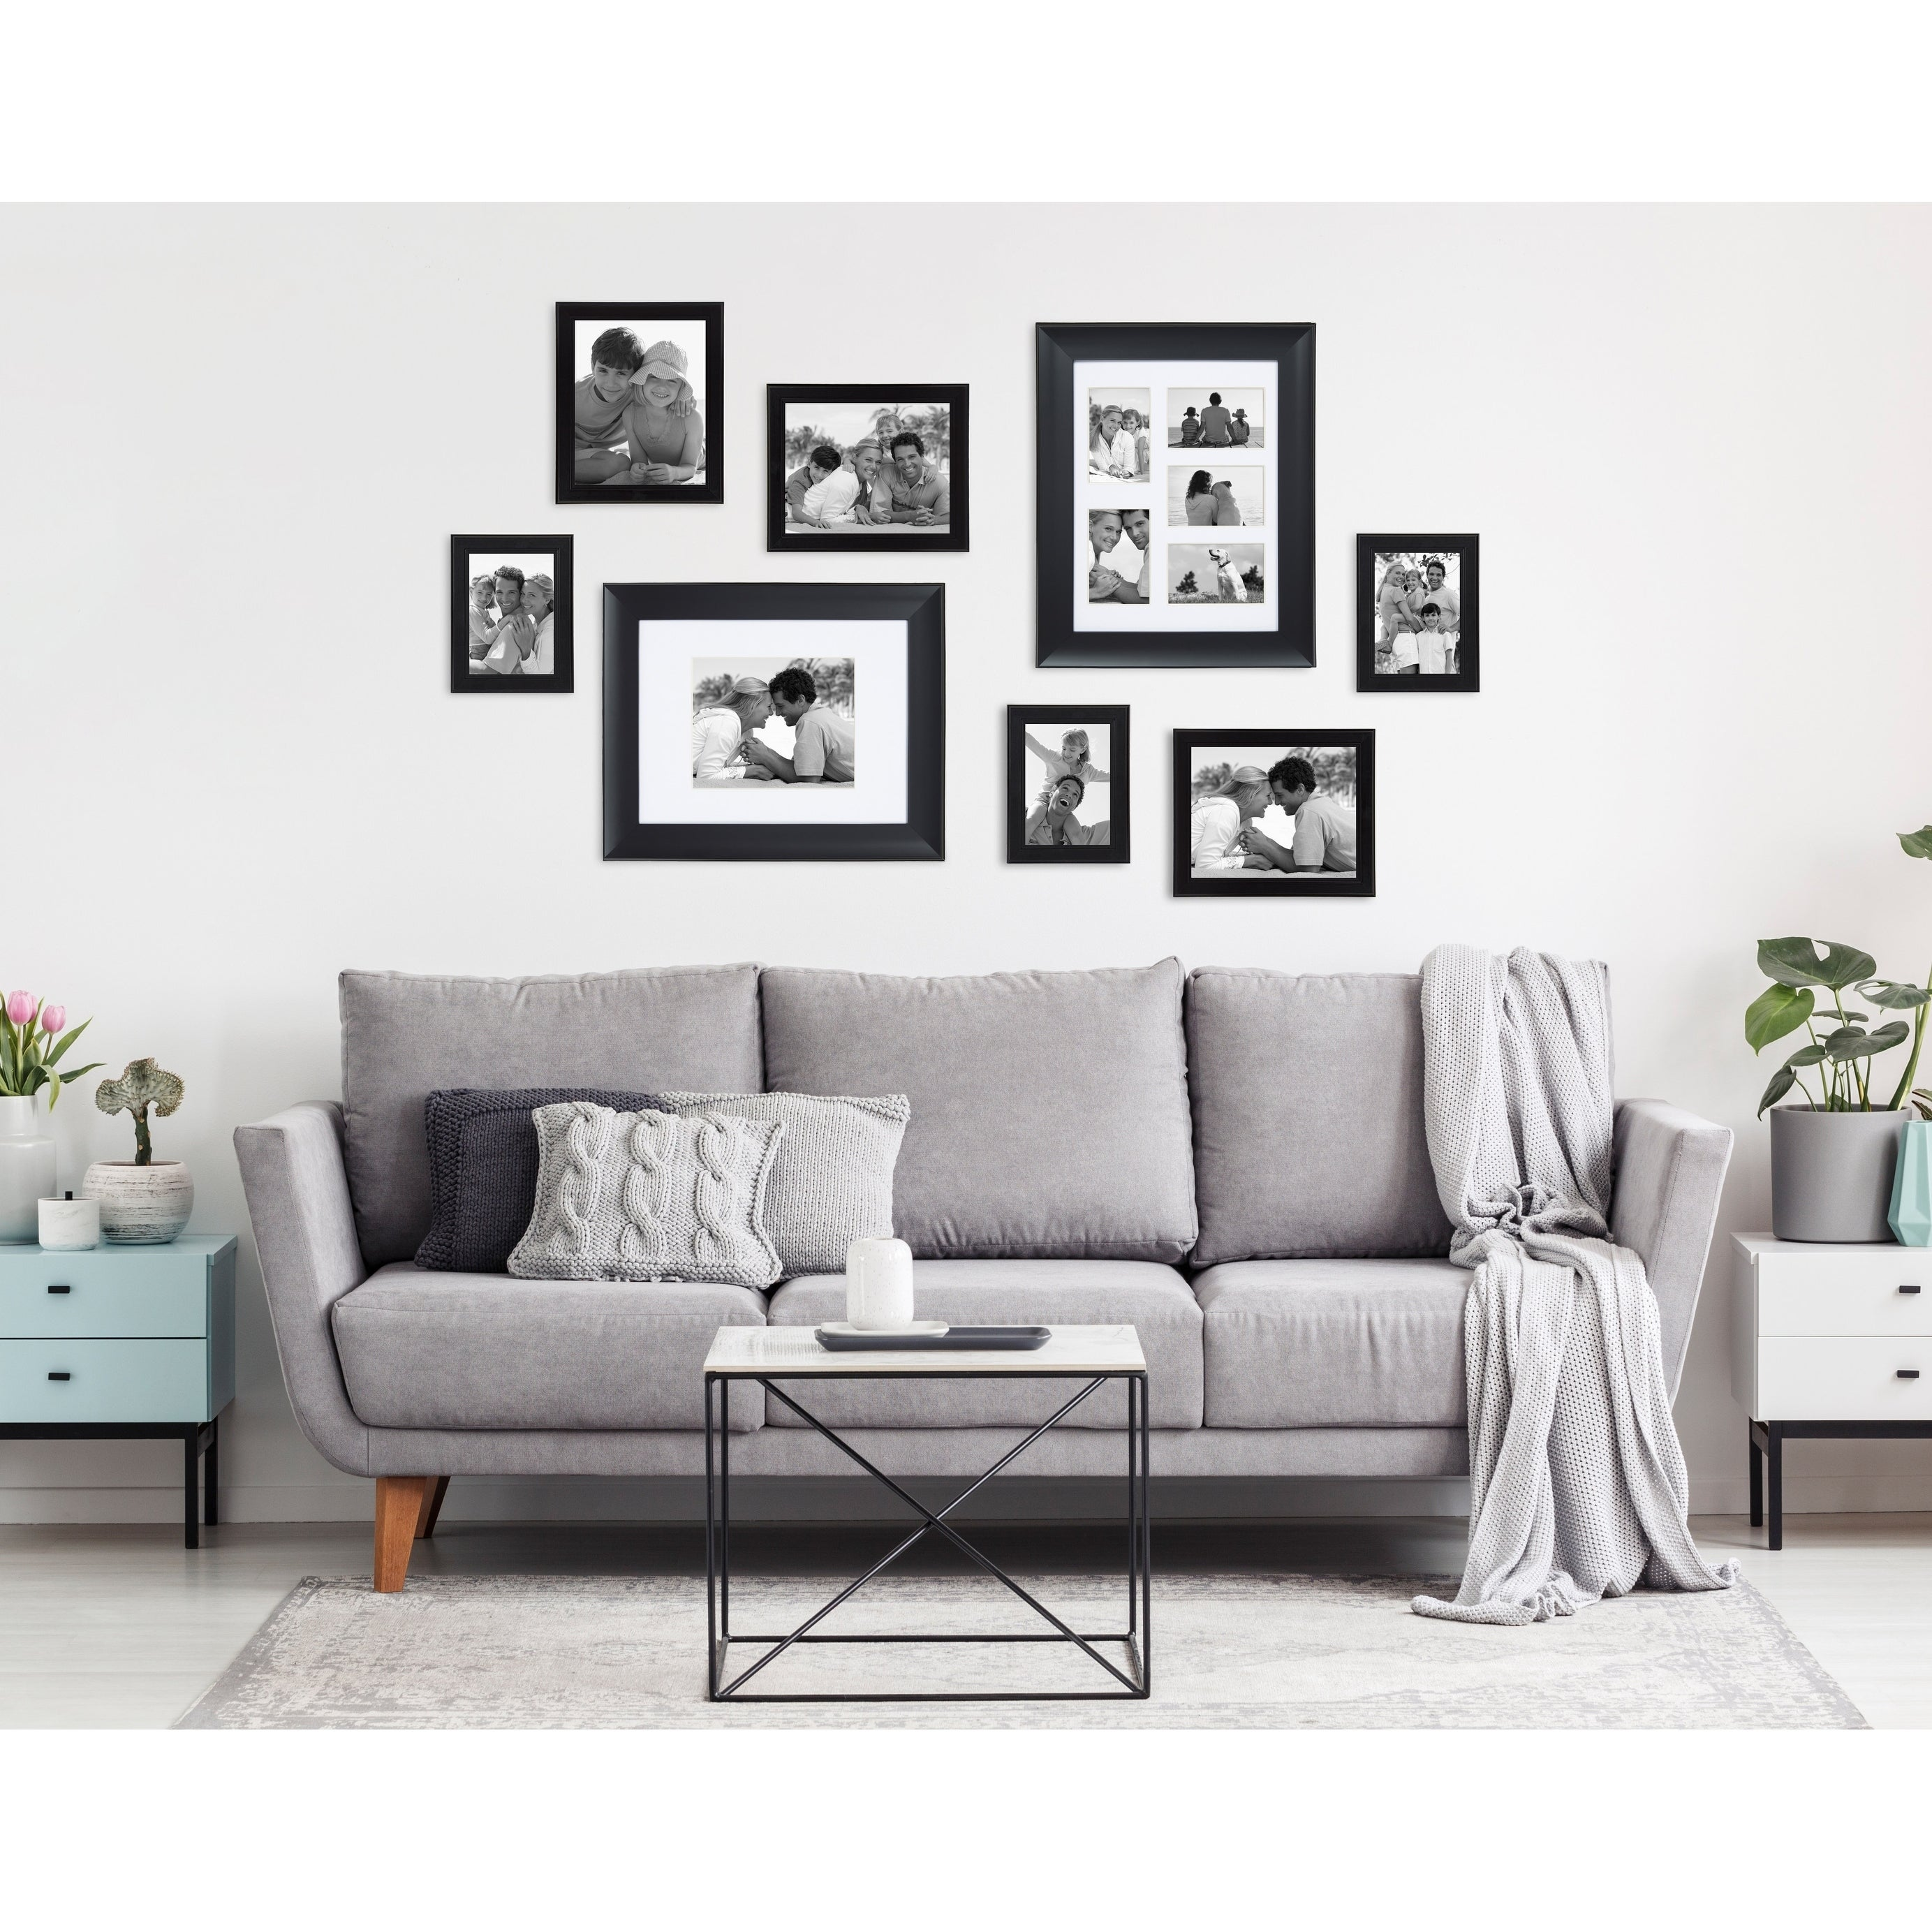 Designovation Scoop 12x16 Matted To 8x10 Picture Frame Overstock 26440787 12x16 Matted To 8x10 Cherry